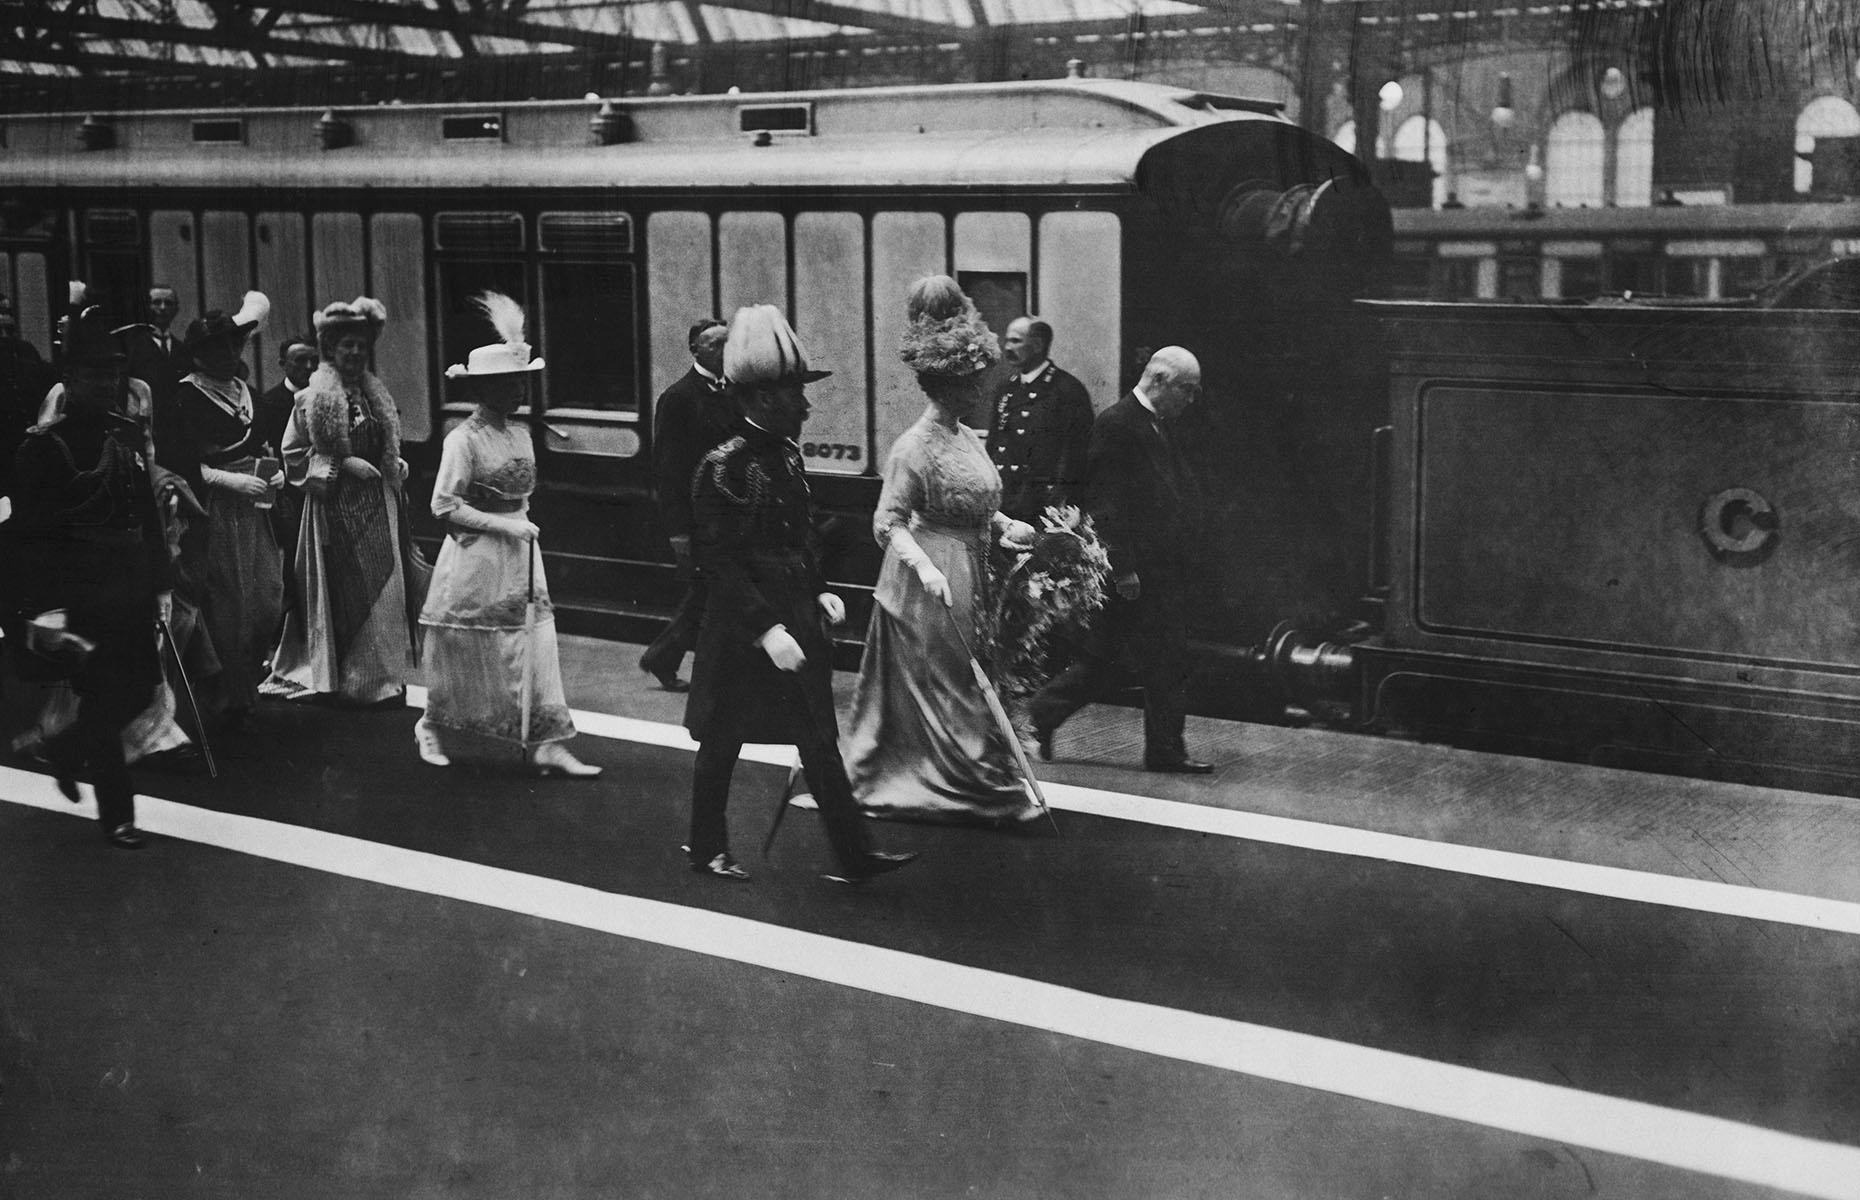 Slide 9 of 32: For many years trains were and in some occasions still are the top choice for travel across the UK for the British royals. Here, King George V and the royal party are captured leaving Glasgow Station during a royal tour of Scotland in 1914.